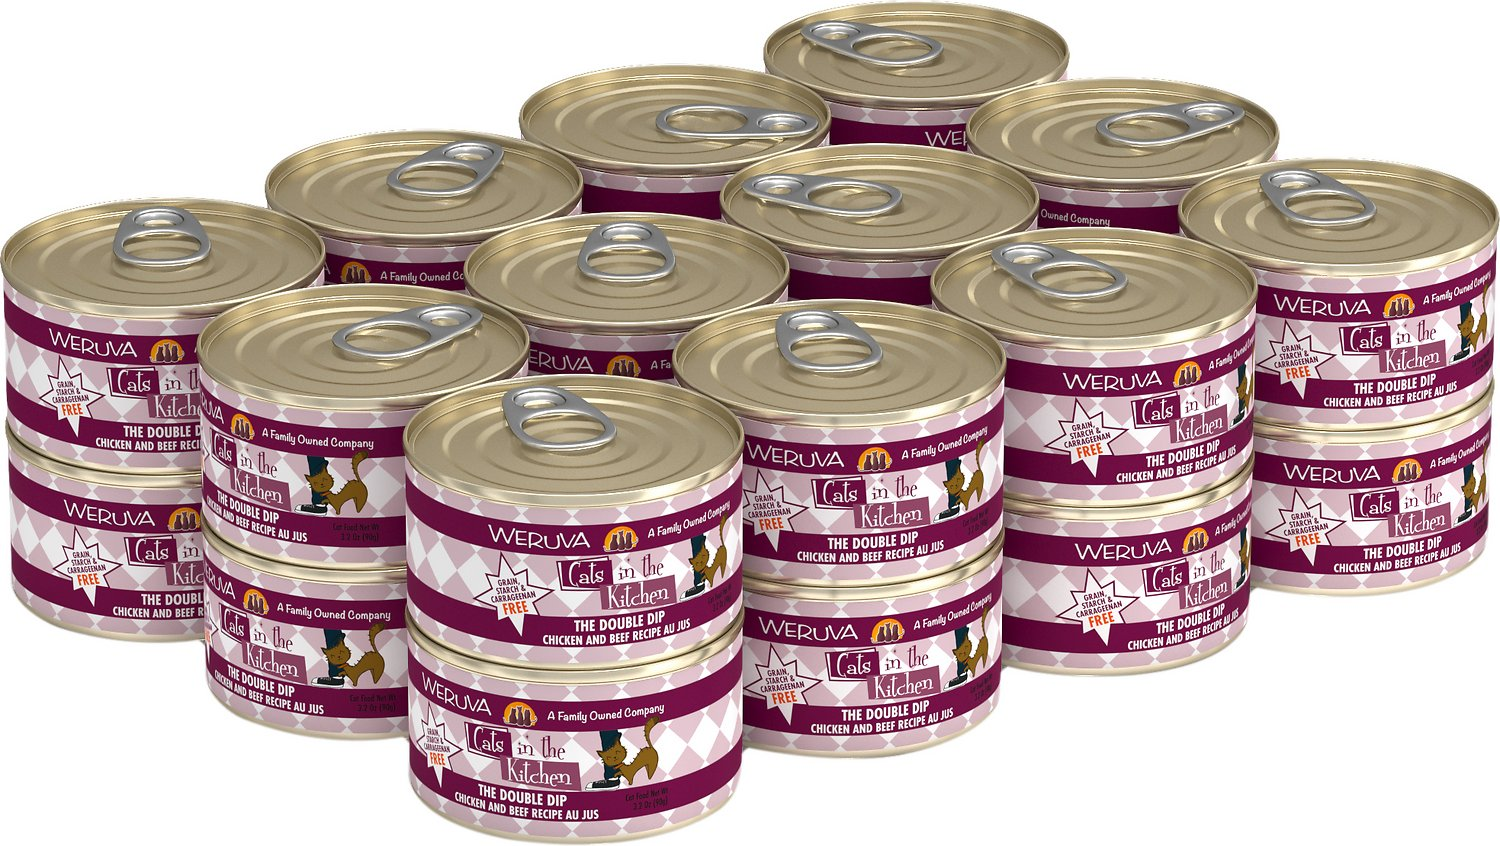 Weruva Cats in the Kitchen The Double Dip Chicken & Beef Au Jus Grain-Free Wet Cat Food, 3.2-oz, case of 24